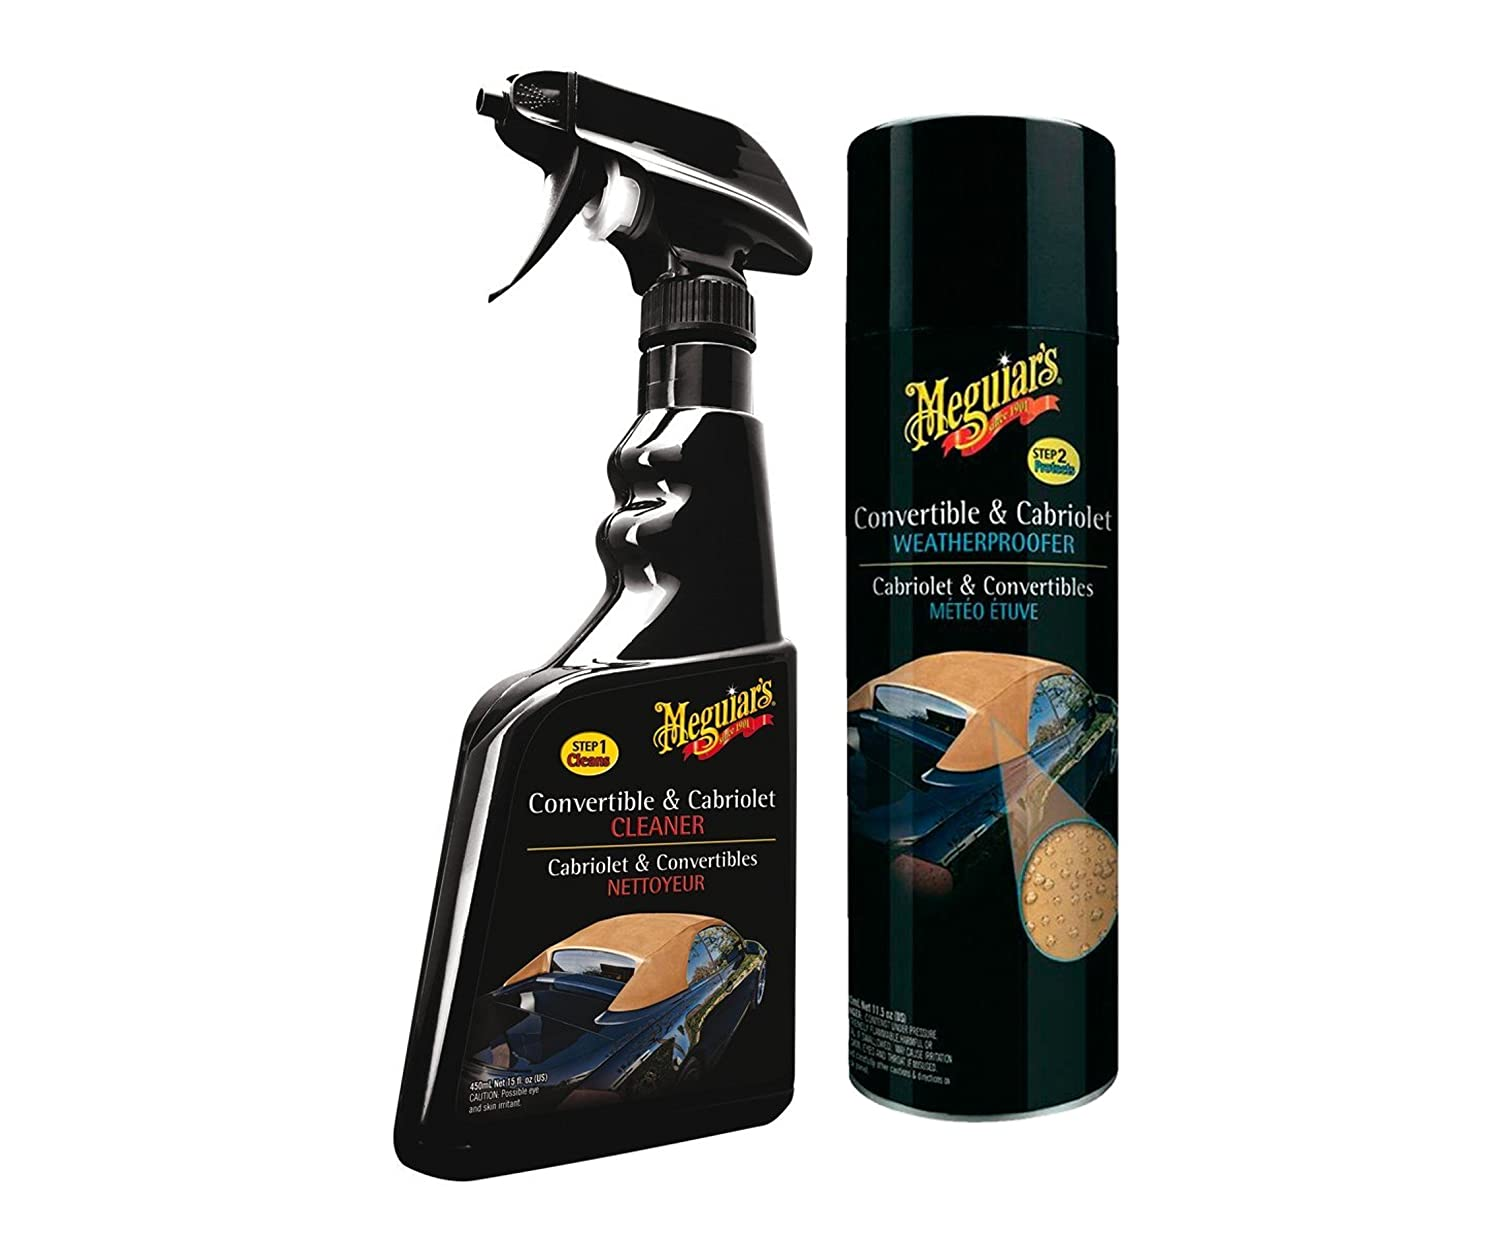 Meguiar's Convertible and Cabriolet Cleaner and Weatherproofer Set